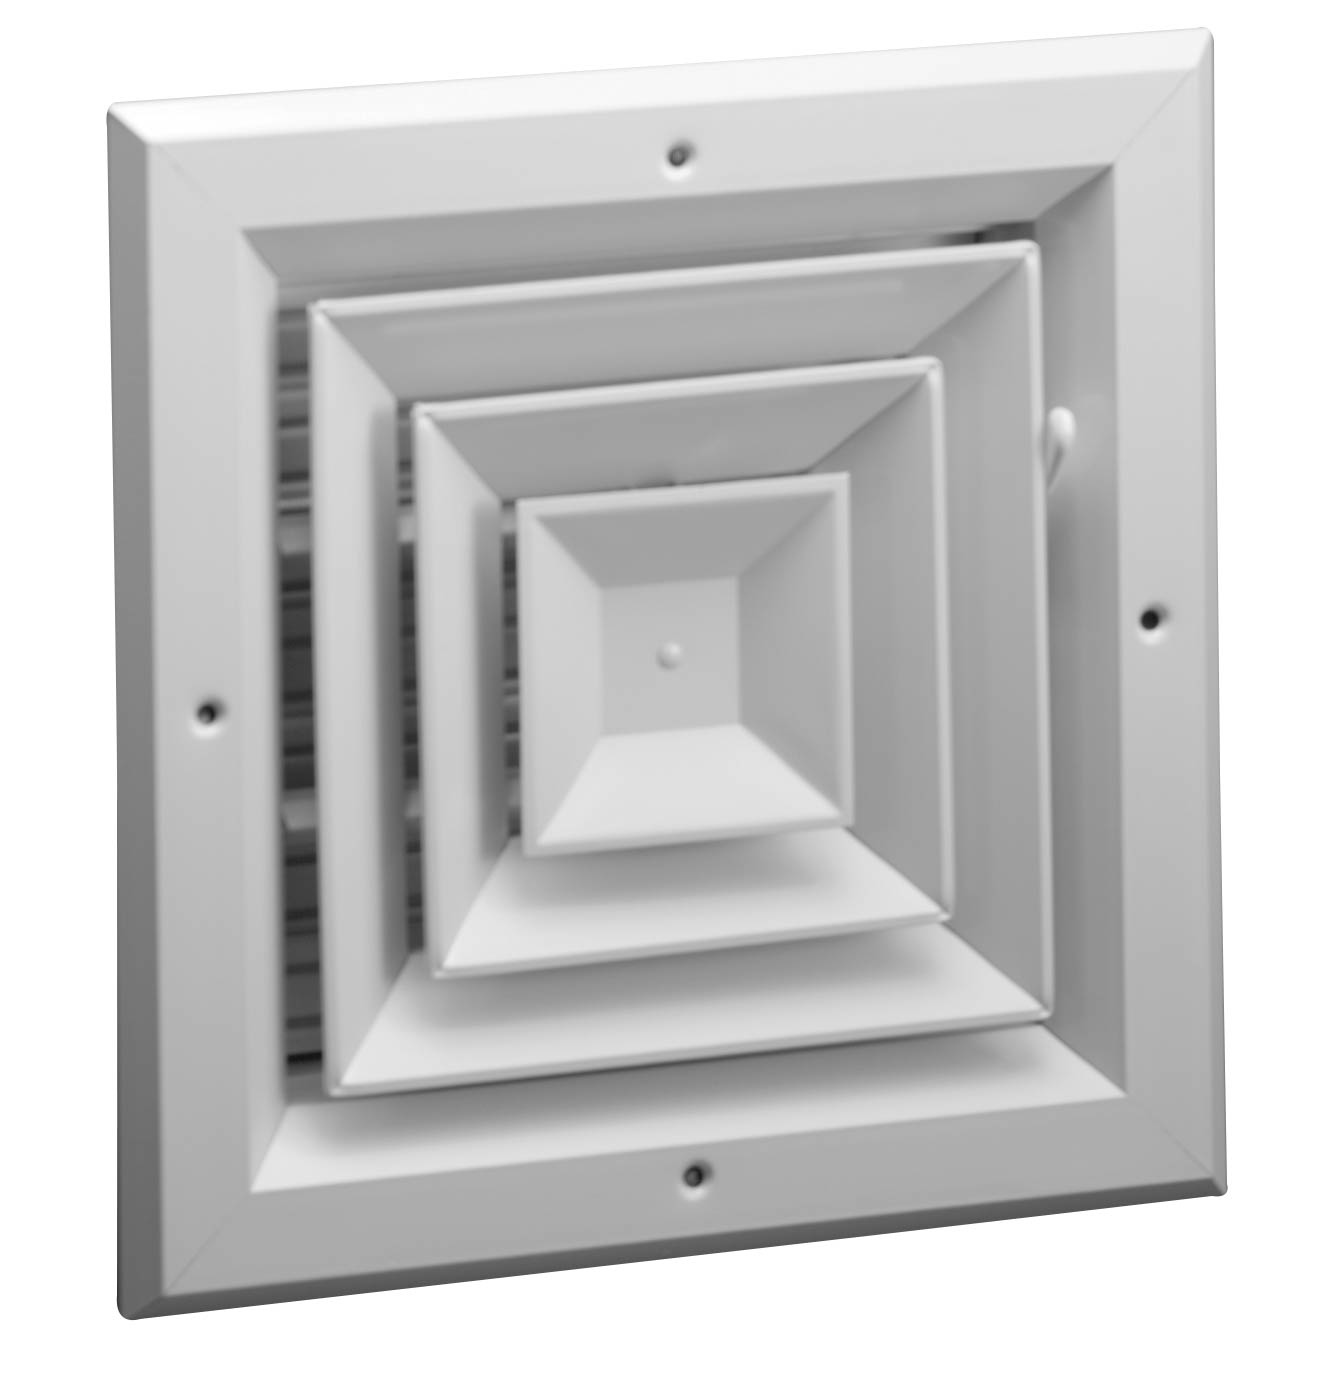 A1004 Series Four Way Square Ceiling Diffuser Airmate